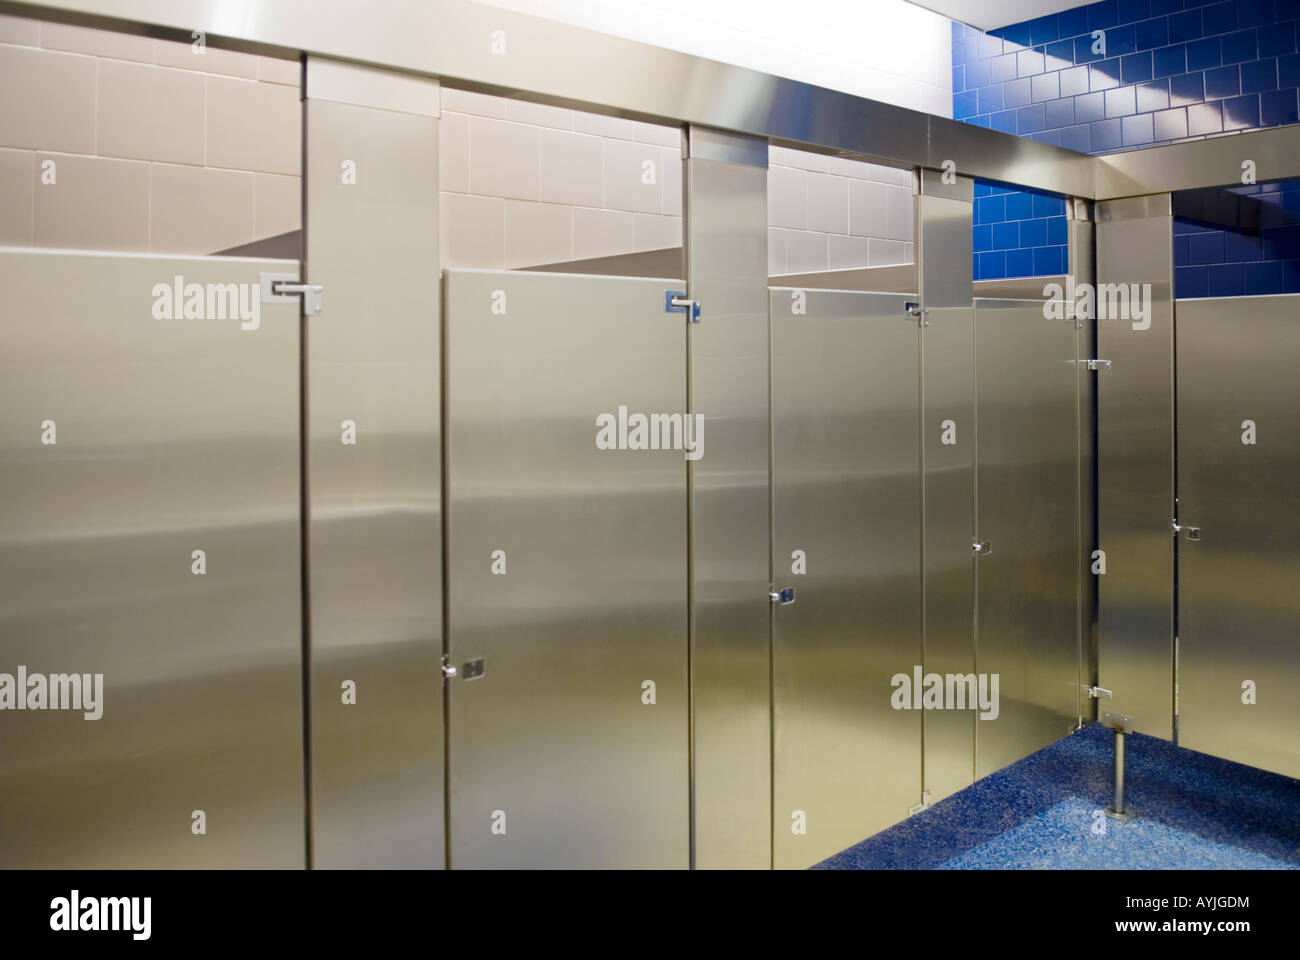 public bathroom stalls all occupied Stock Photo